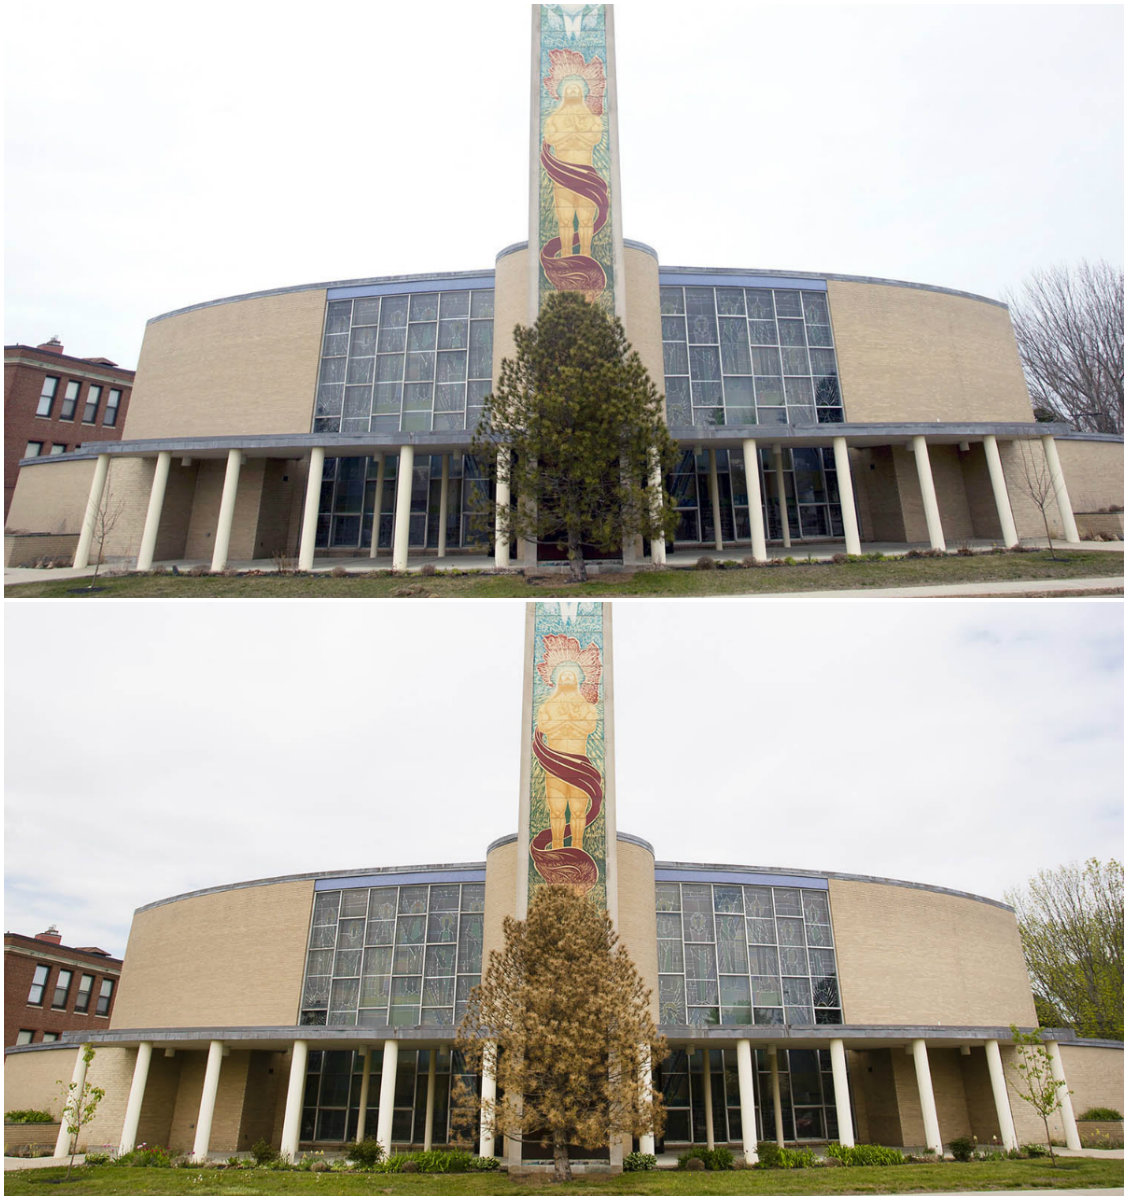 Photos from March 31, top, and May 23, bottom, show that the green needles of the Austrian pine that obscures the mural of Jesus Christ on Holy Cross Catholic Church in South Portland turned brown in less than eight weeks.